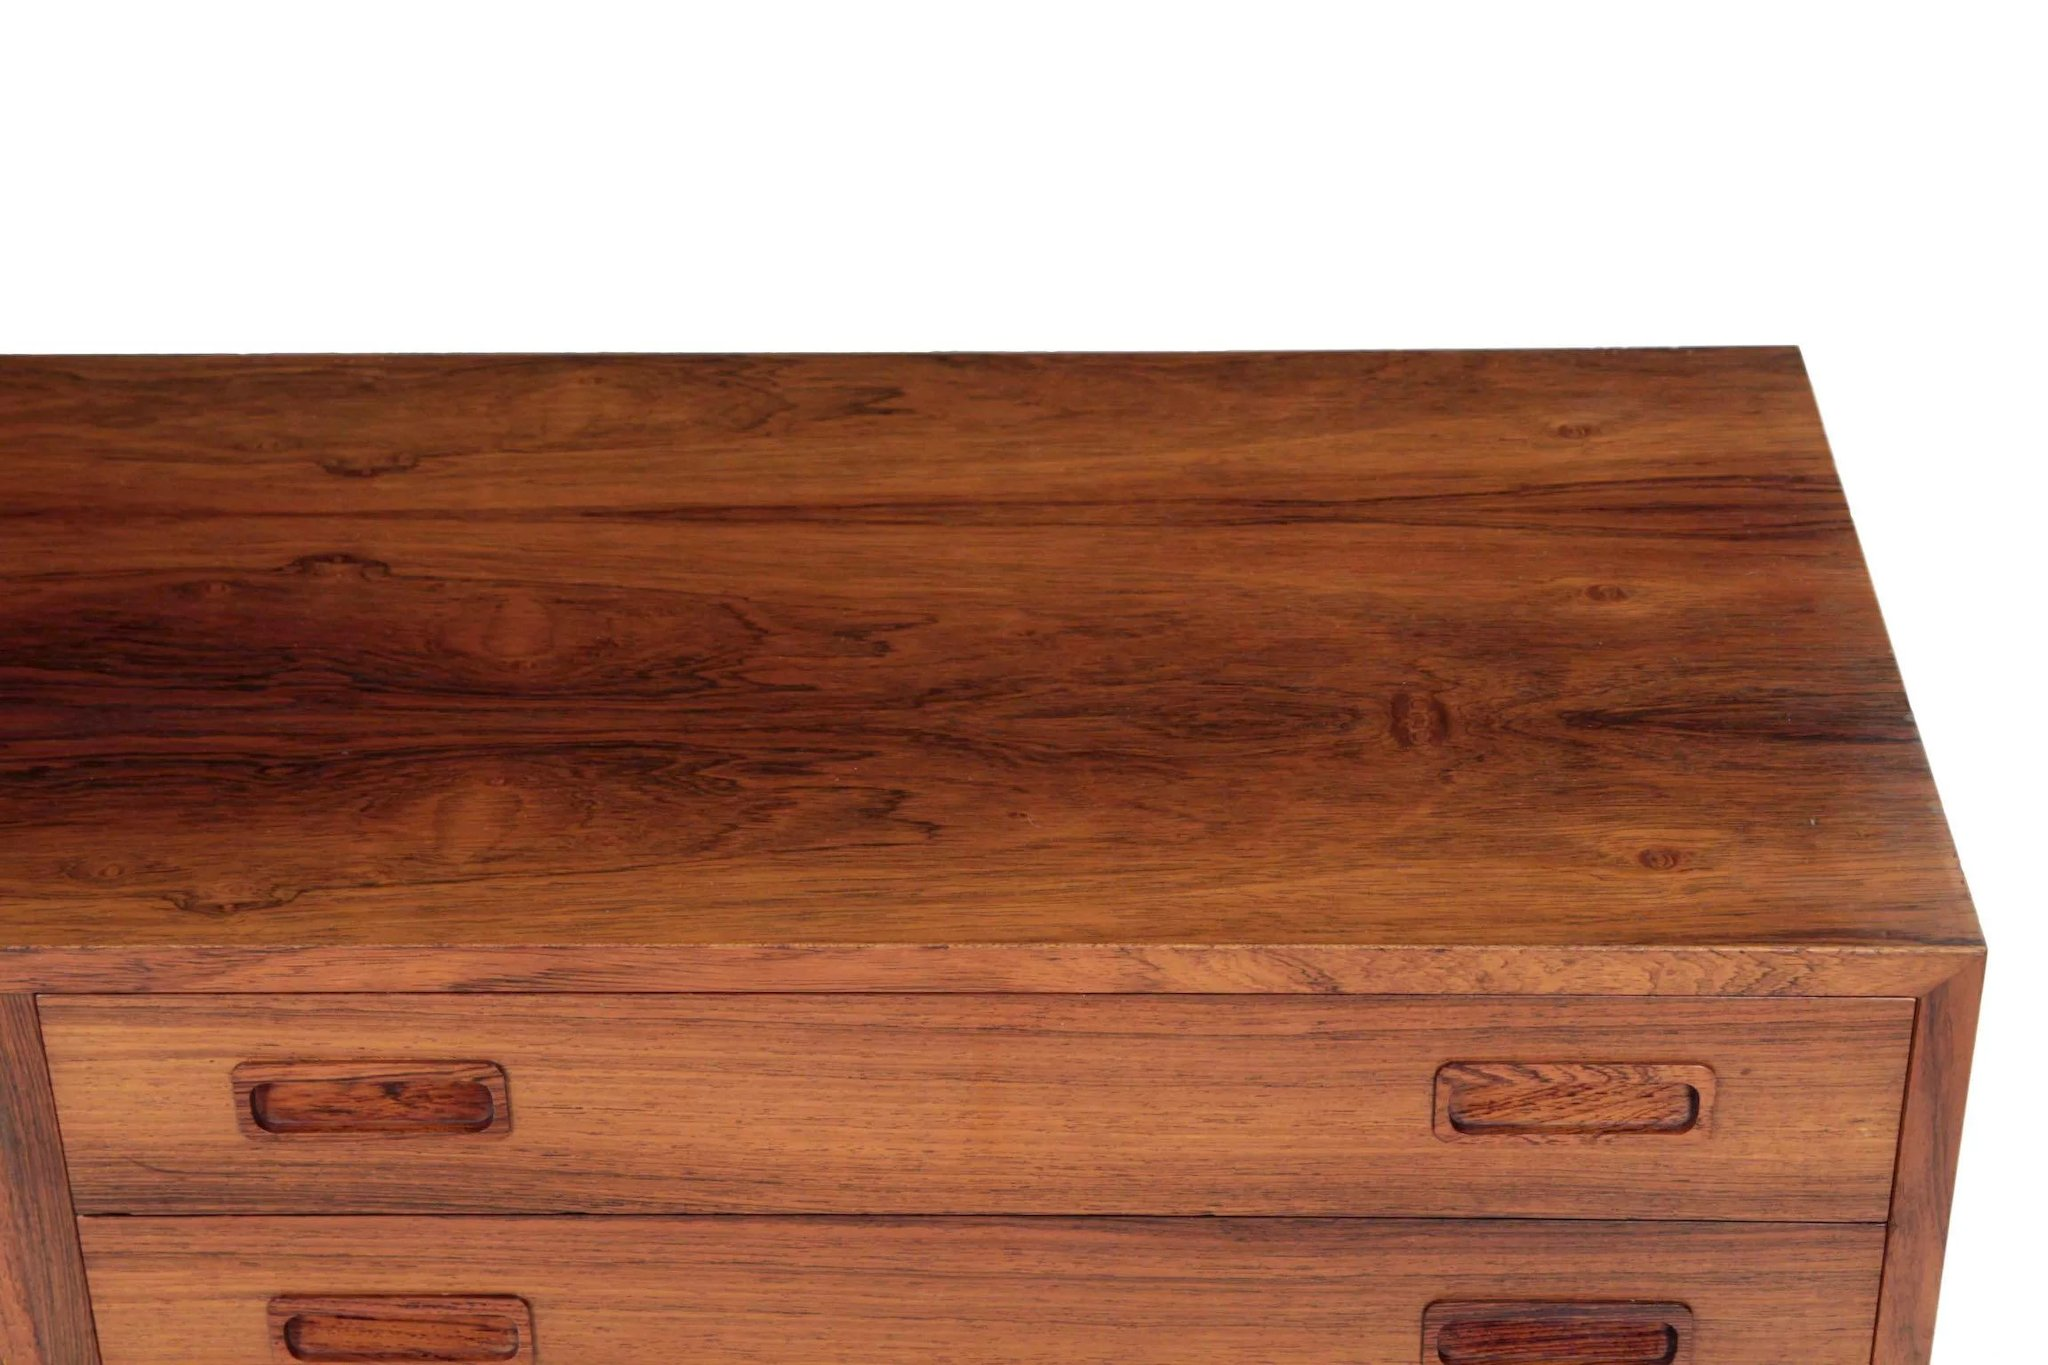 Vintage Danish Credenza : Vintage danish mid century credenza chest of drawers by poul